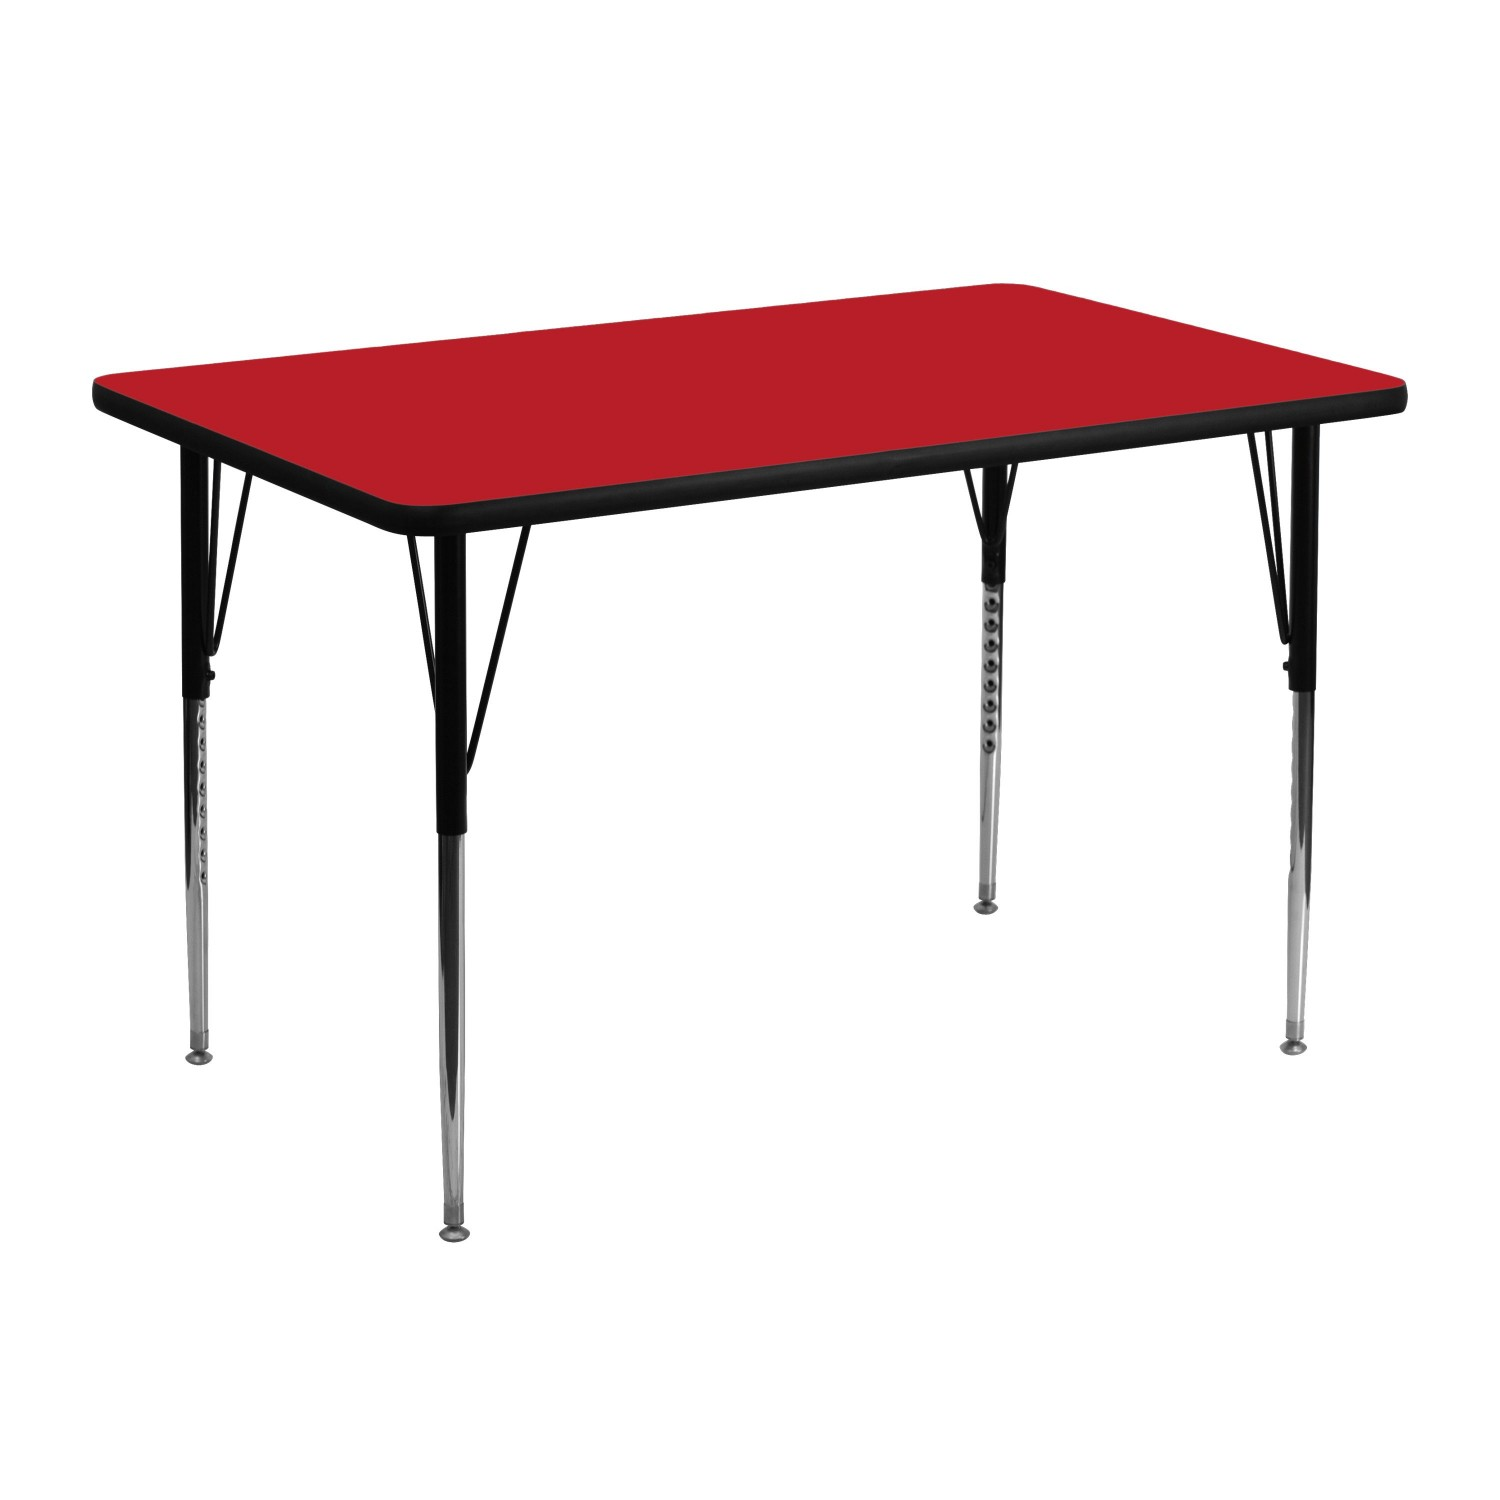 "Flash Furniture XU-A3048-REC-RED-H-A-GG Rectangular Activity Table, High Pressure Red Laminate Top, Standard Height Adjustable Legs 30"" x 48"""